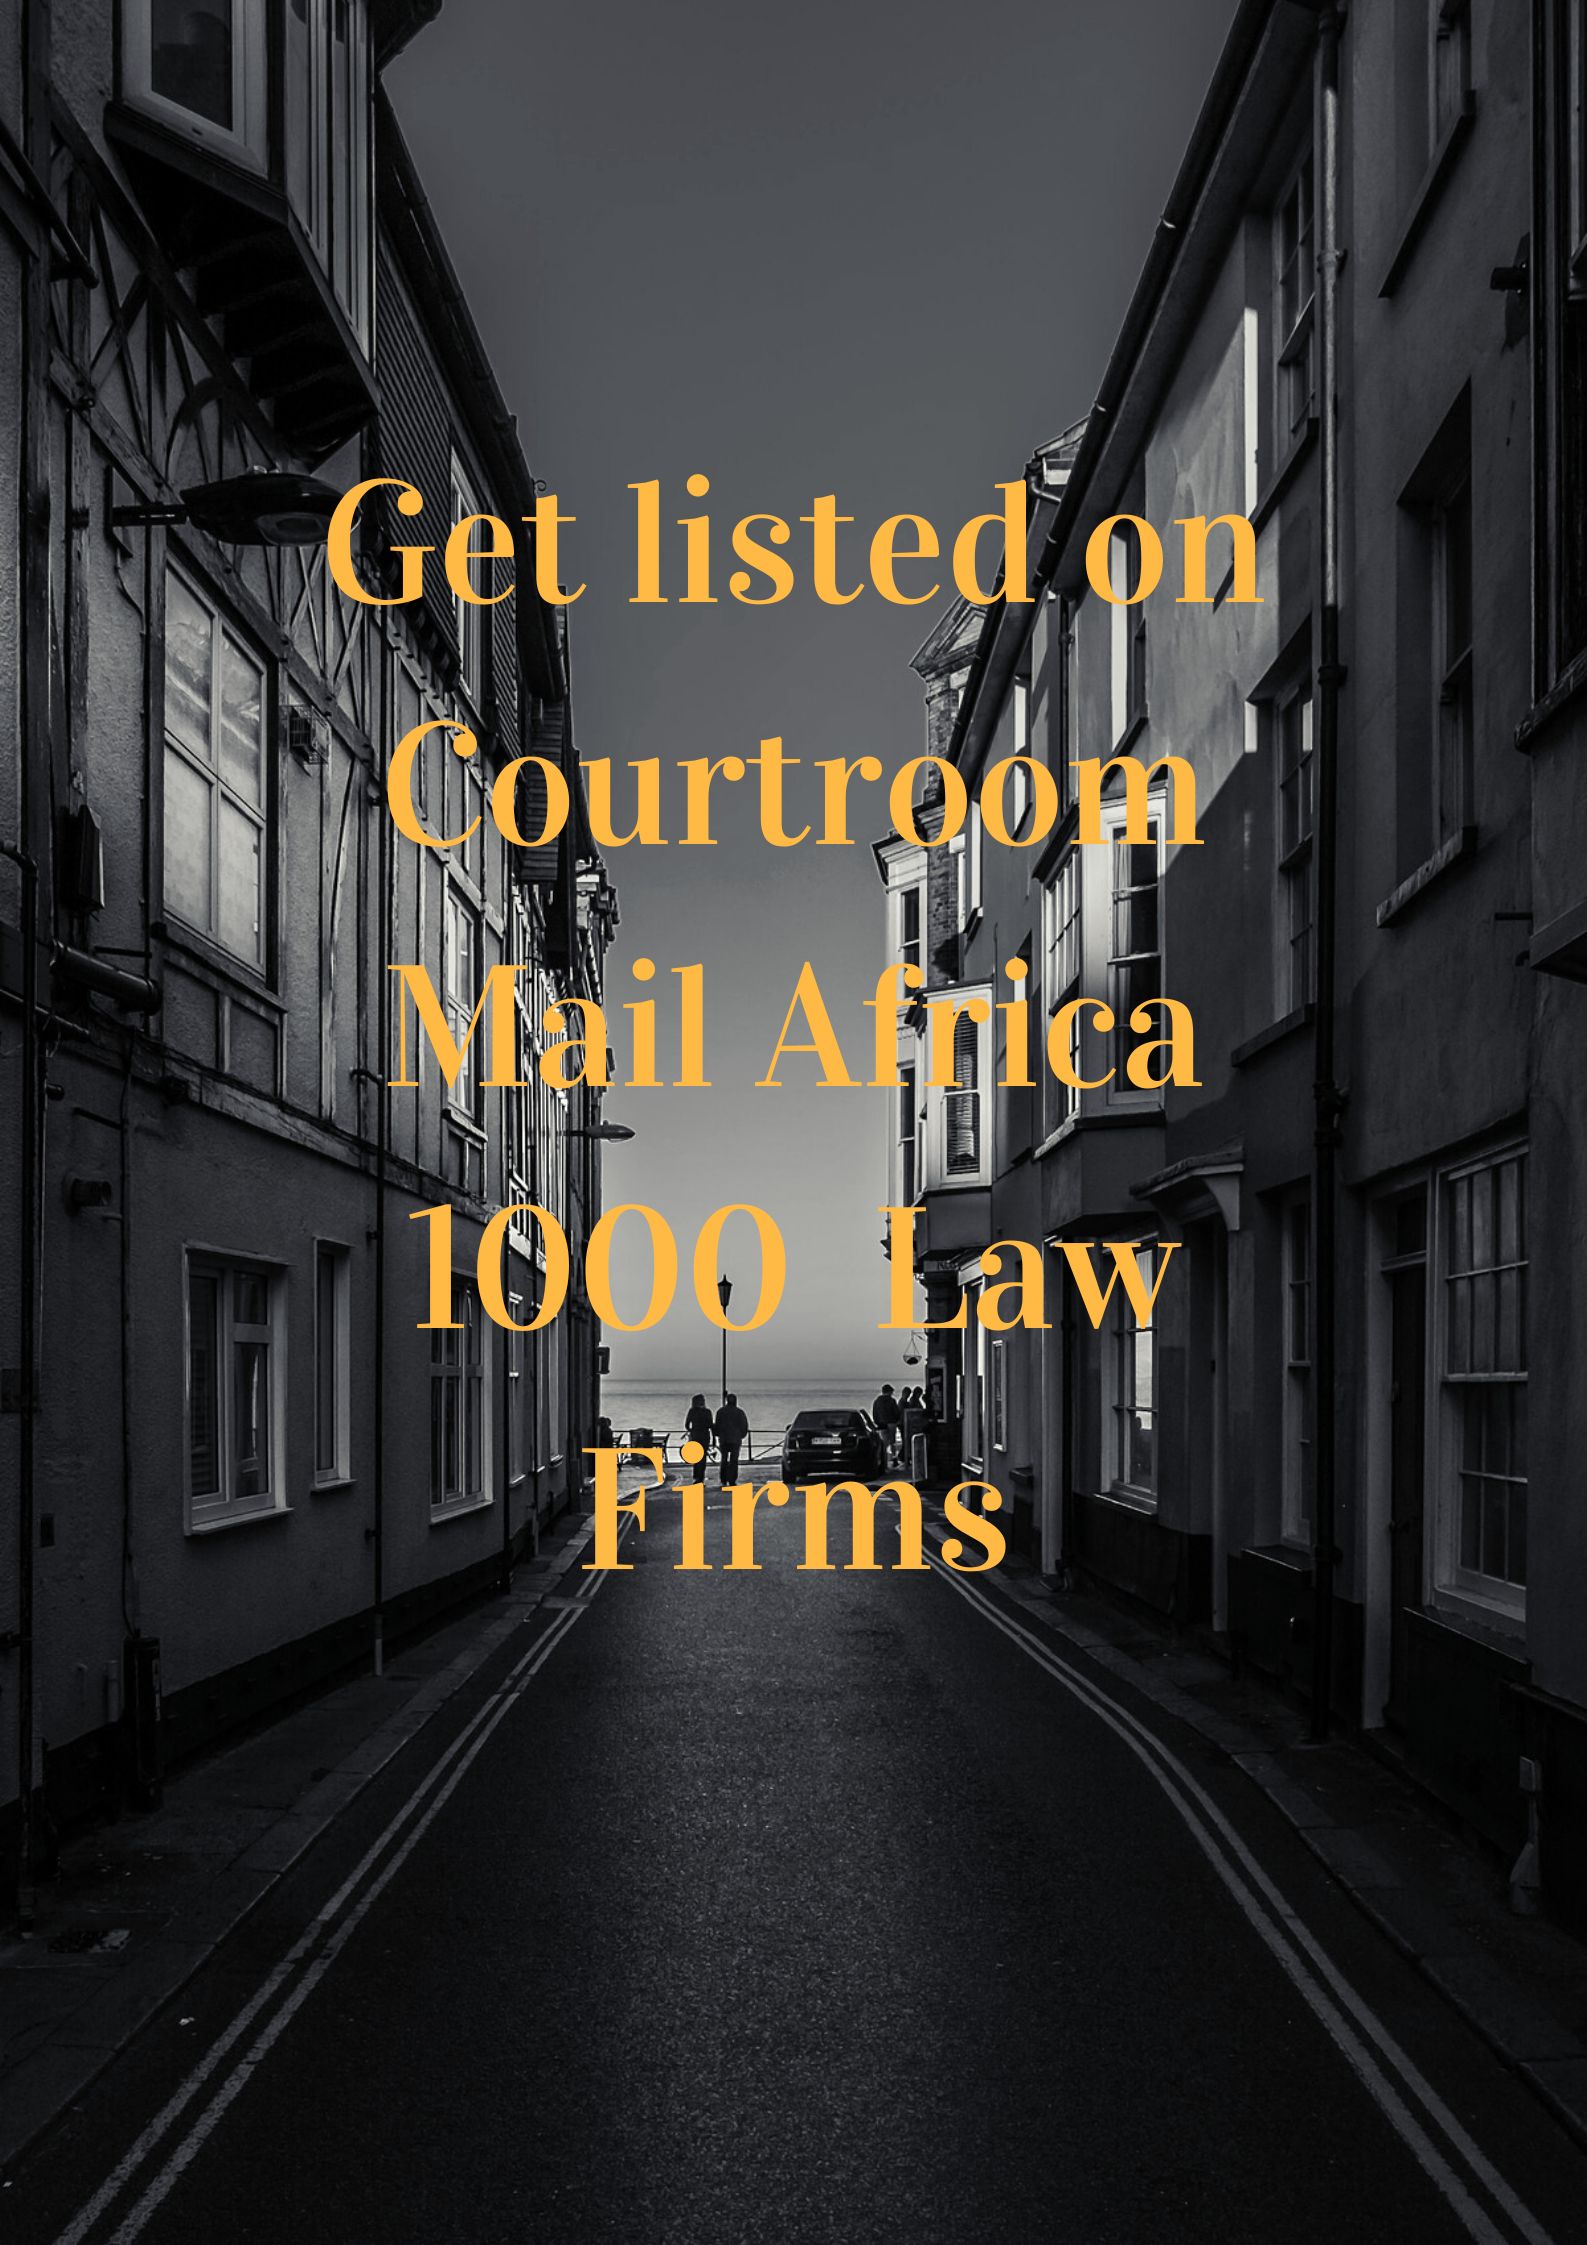 List your Firm